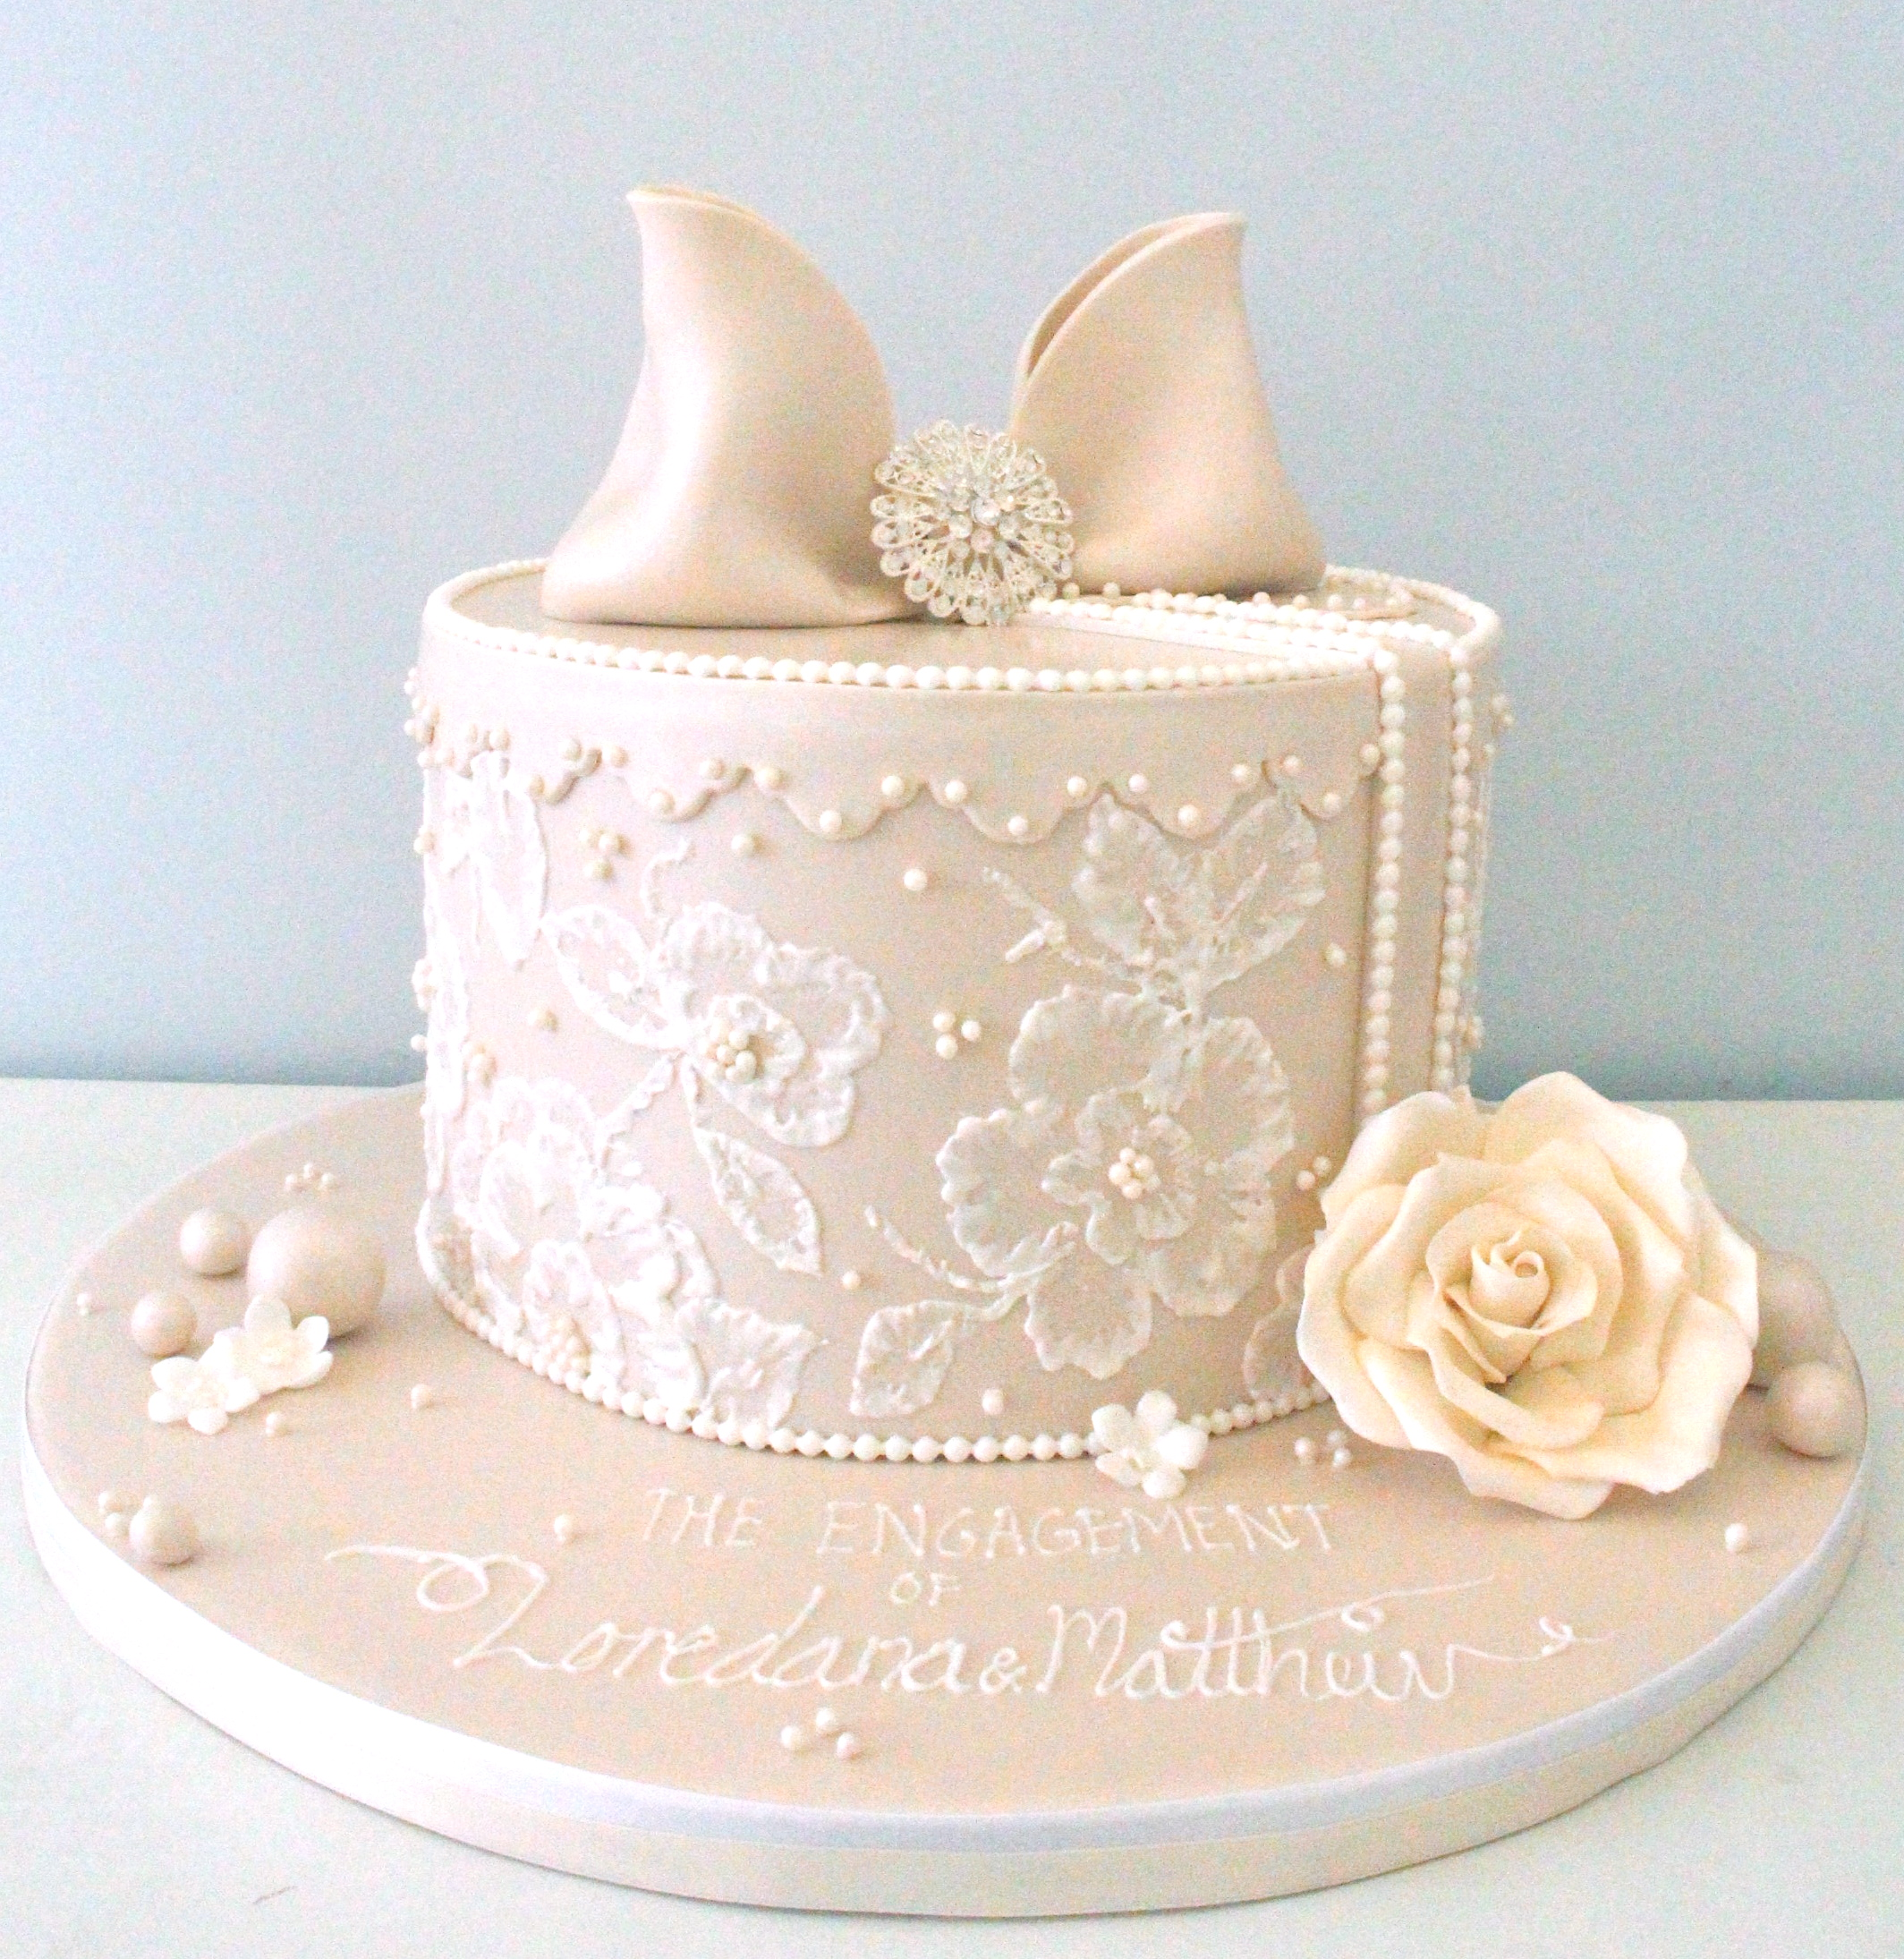 Cake Images For Engagement : Engagement Cakes - Pretty Parties